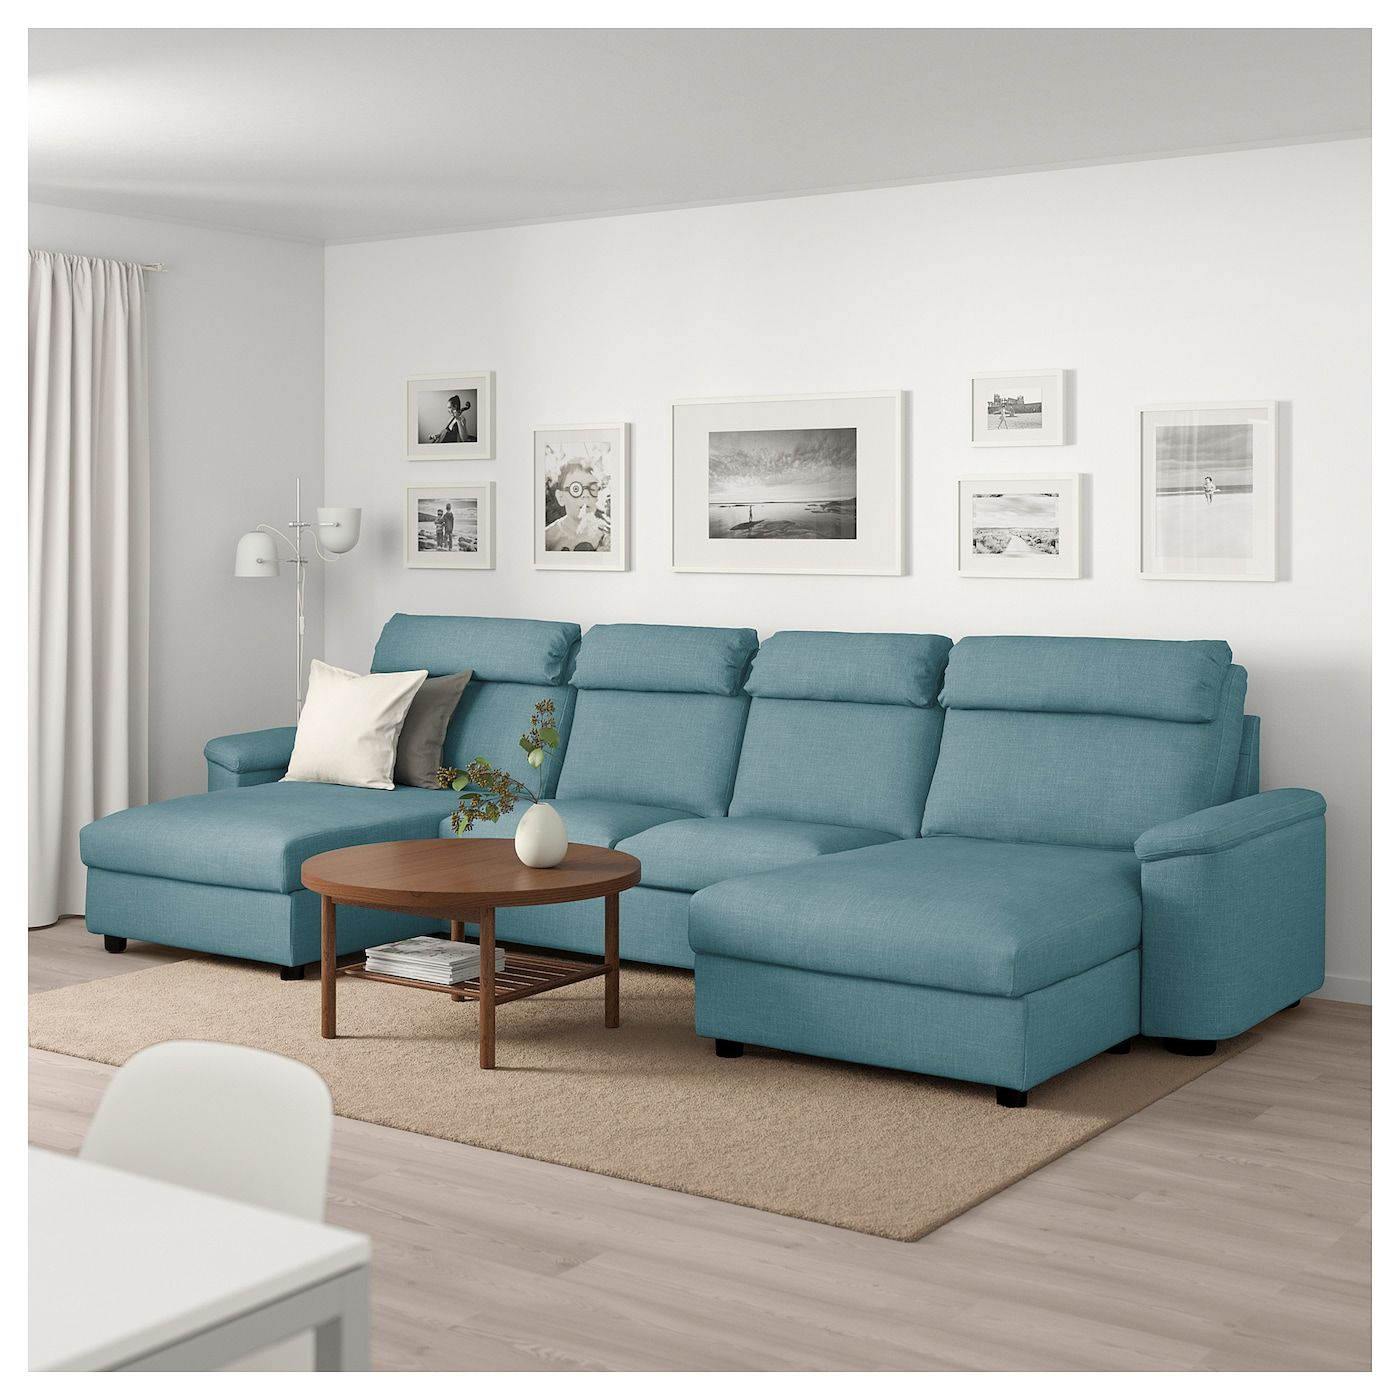 Lidhult Sectional 4 Seat With Chaise Gassebol Blue Gray Learn More Sofa Back Cushions Furniture Sofa Set